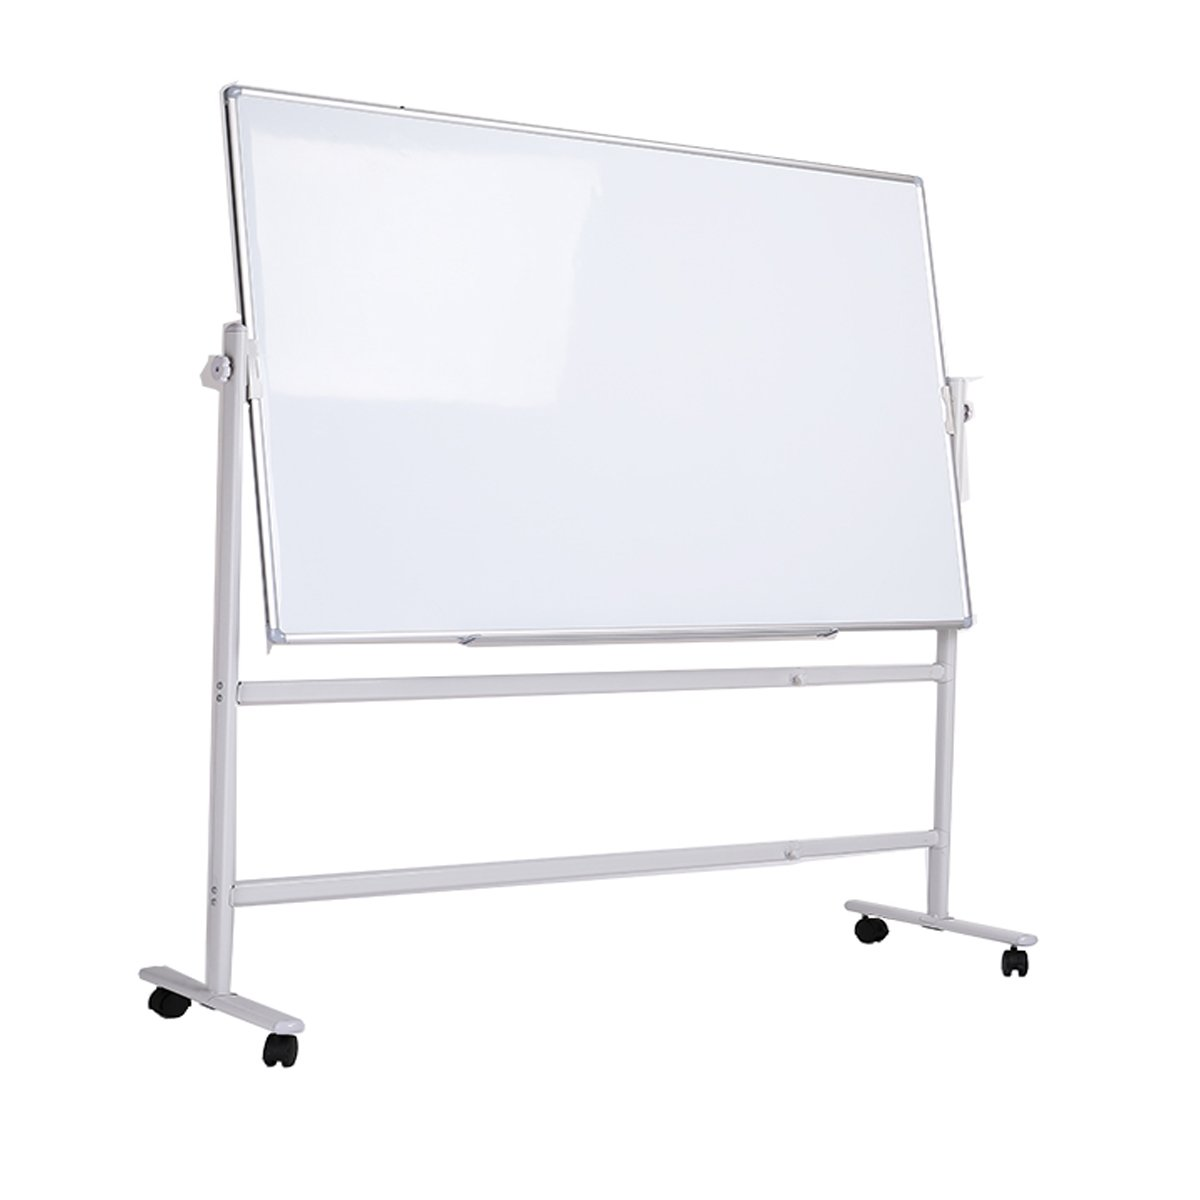 ZHIDIAN Office 36×48Inch Mobile Double Sided Magnetic White Dry Erase boards Stand Easel / 2 marker color magnet 4 eraser 1 Included (48×36Inches, Mobile stand)